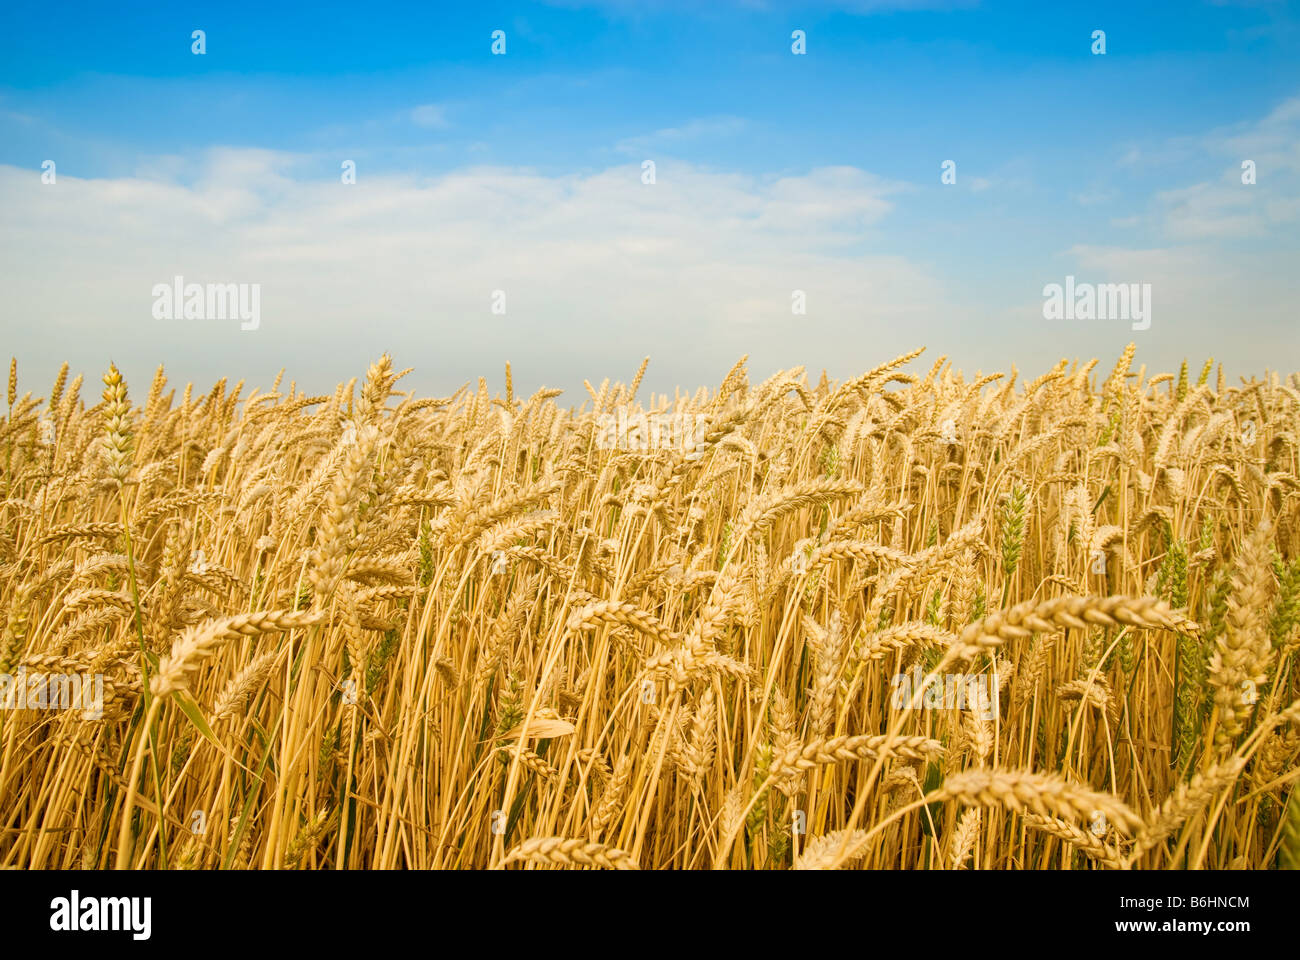 Golden wheat field under a blue sky - Stock Image